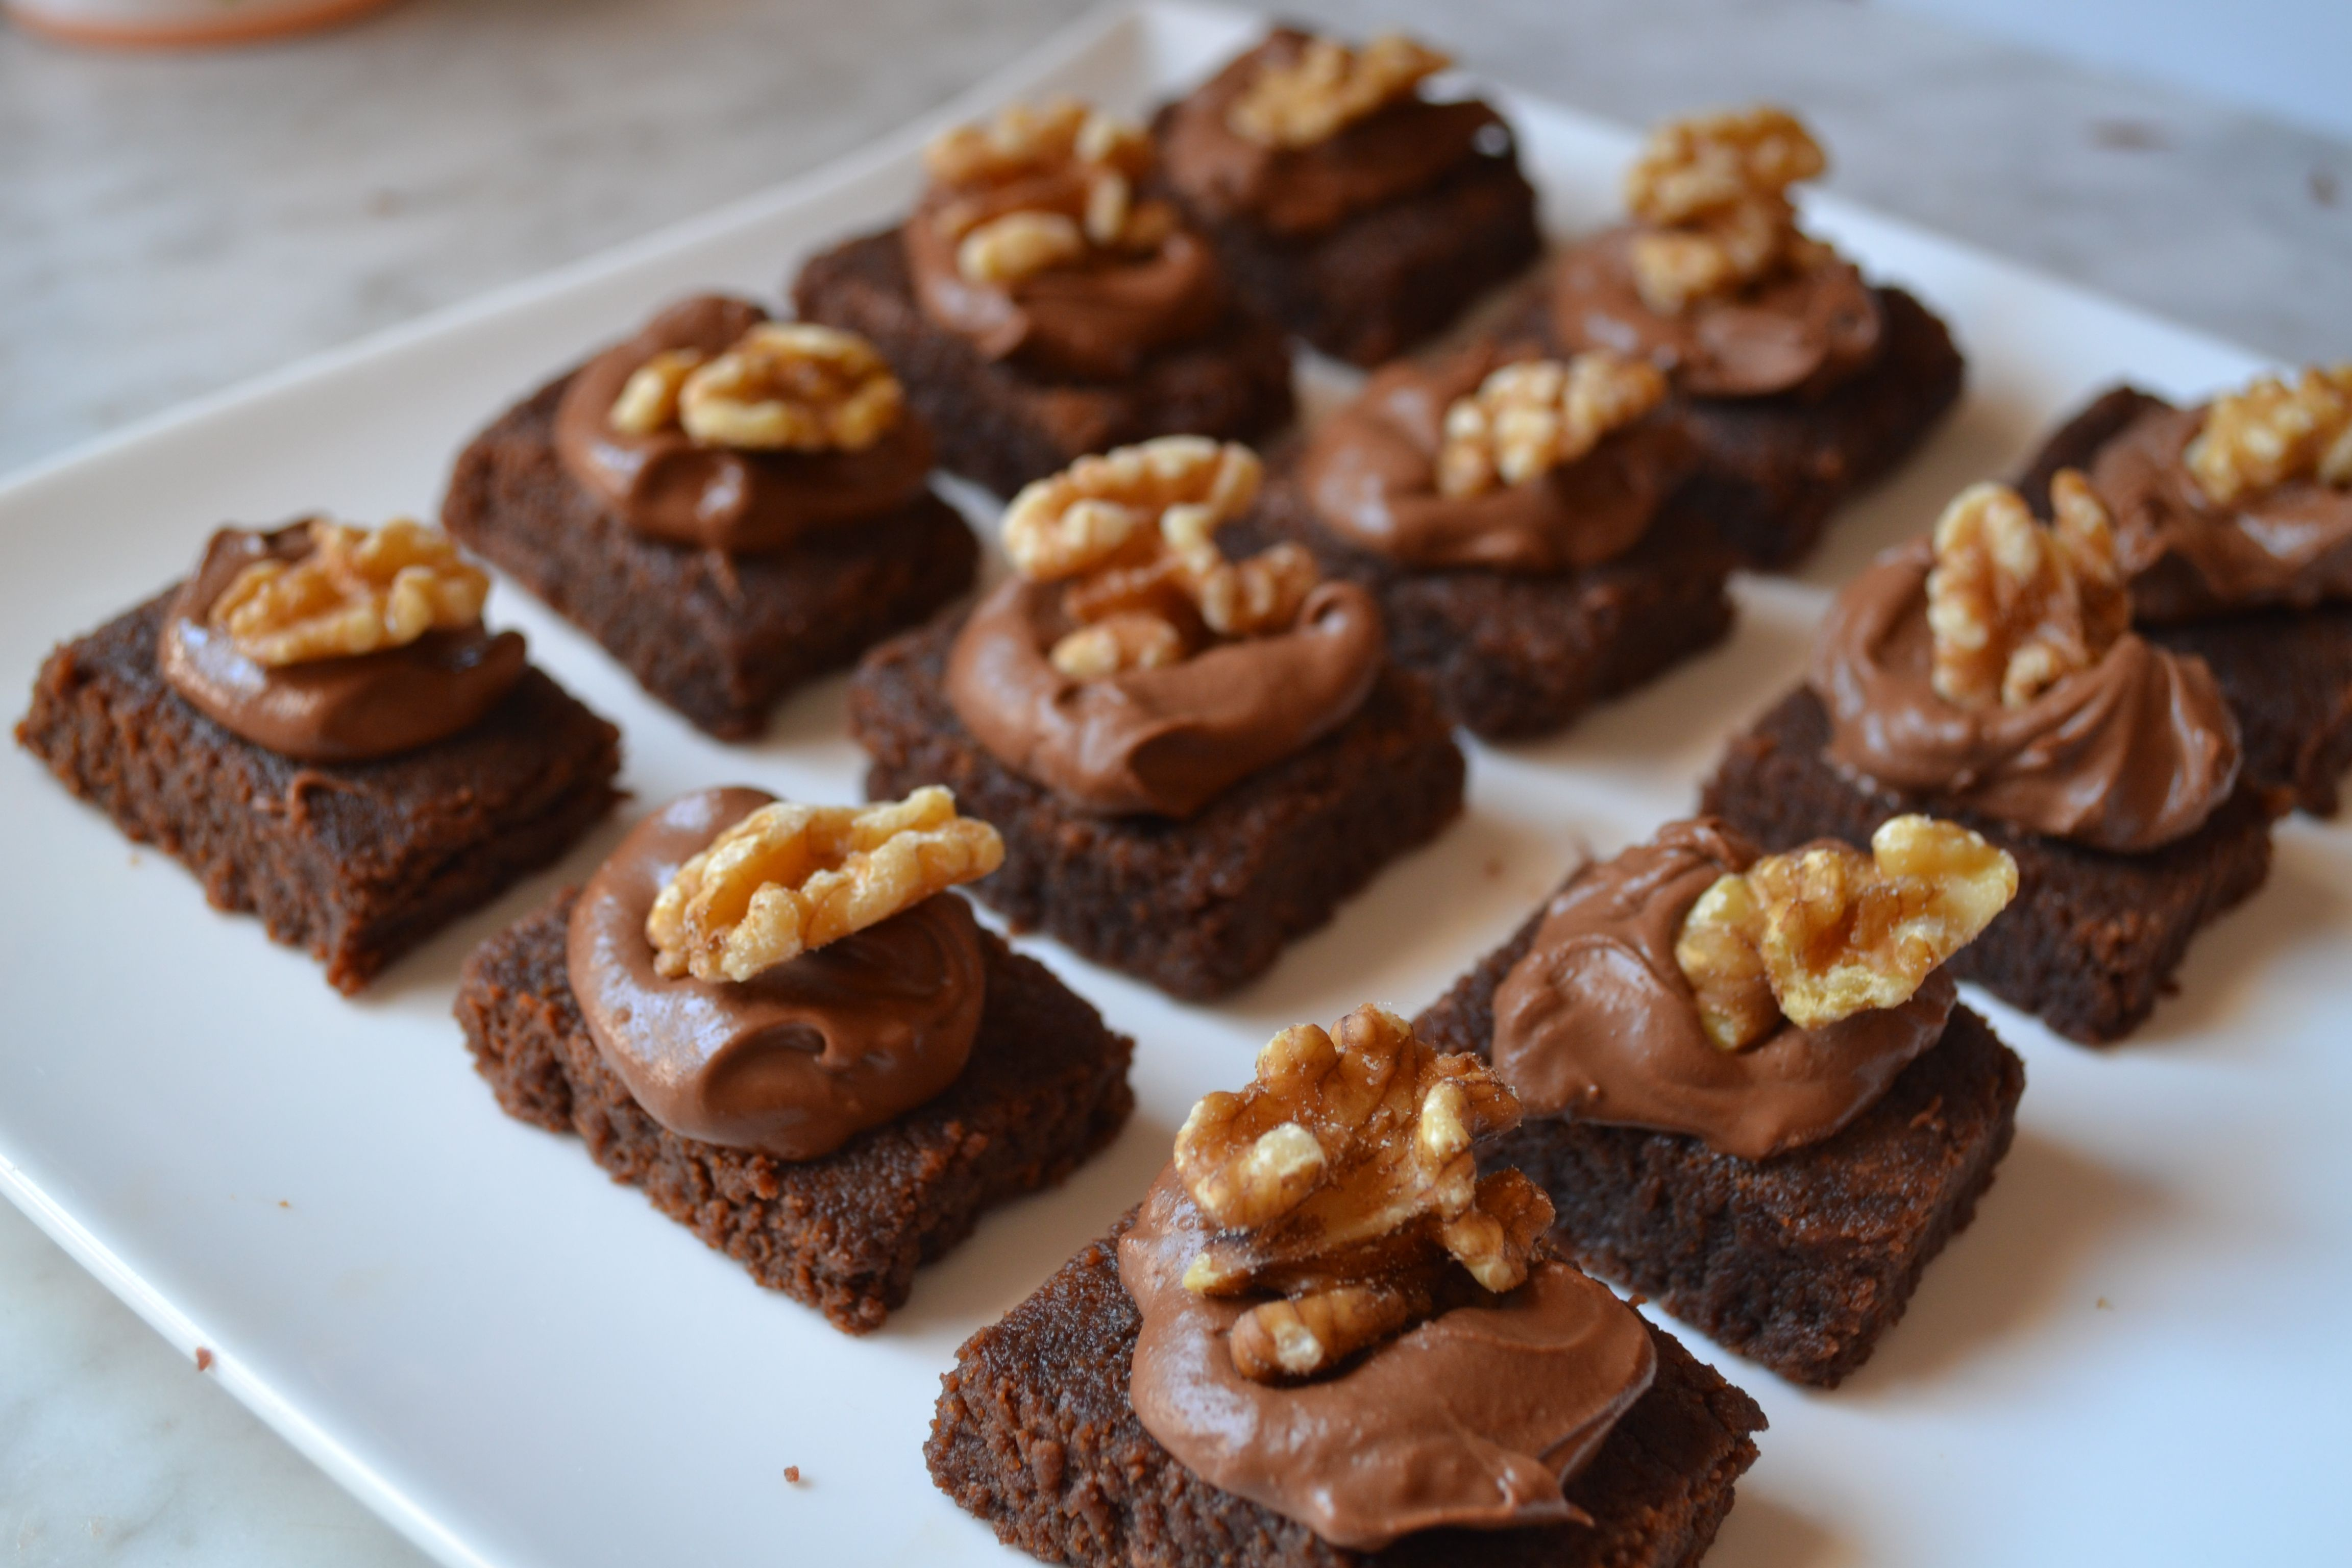 Brownies!!! chocolate and nuts yummy!